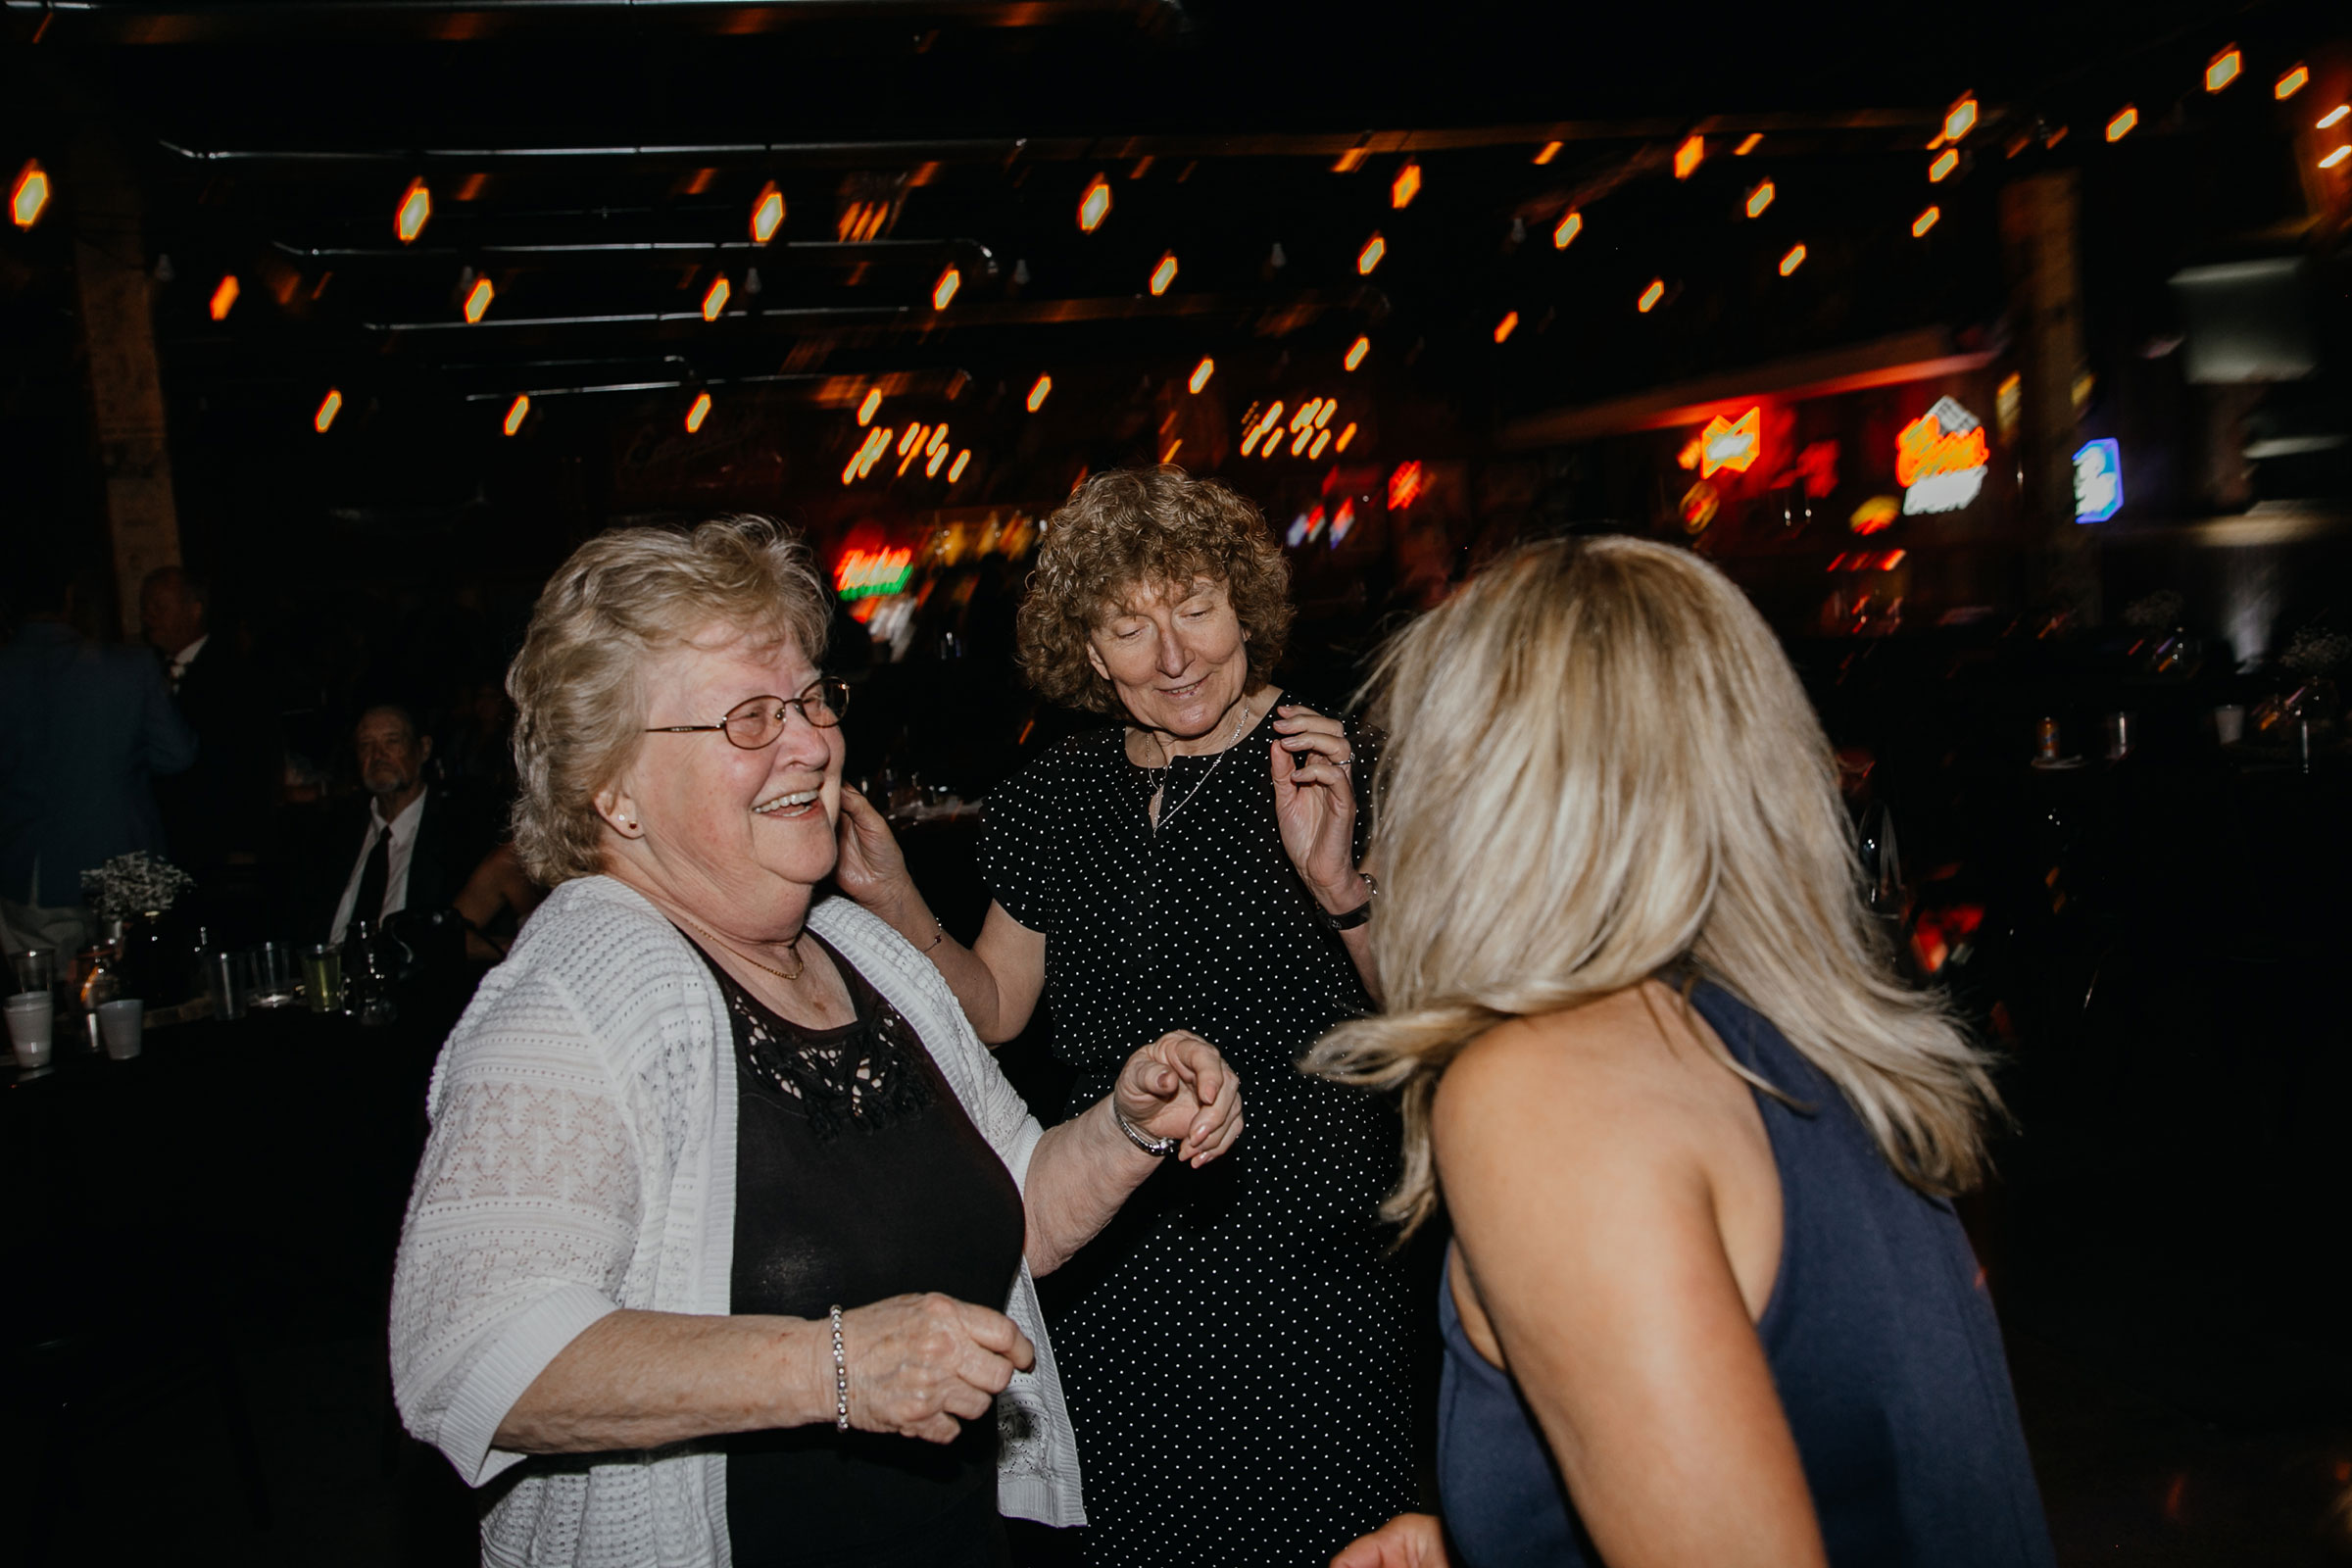 grandma-dancing-with-mom-decades-event-center-building-desmoines-iowa-raelyn-ramey-photography..jpg